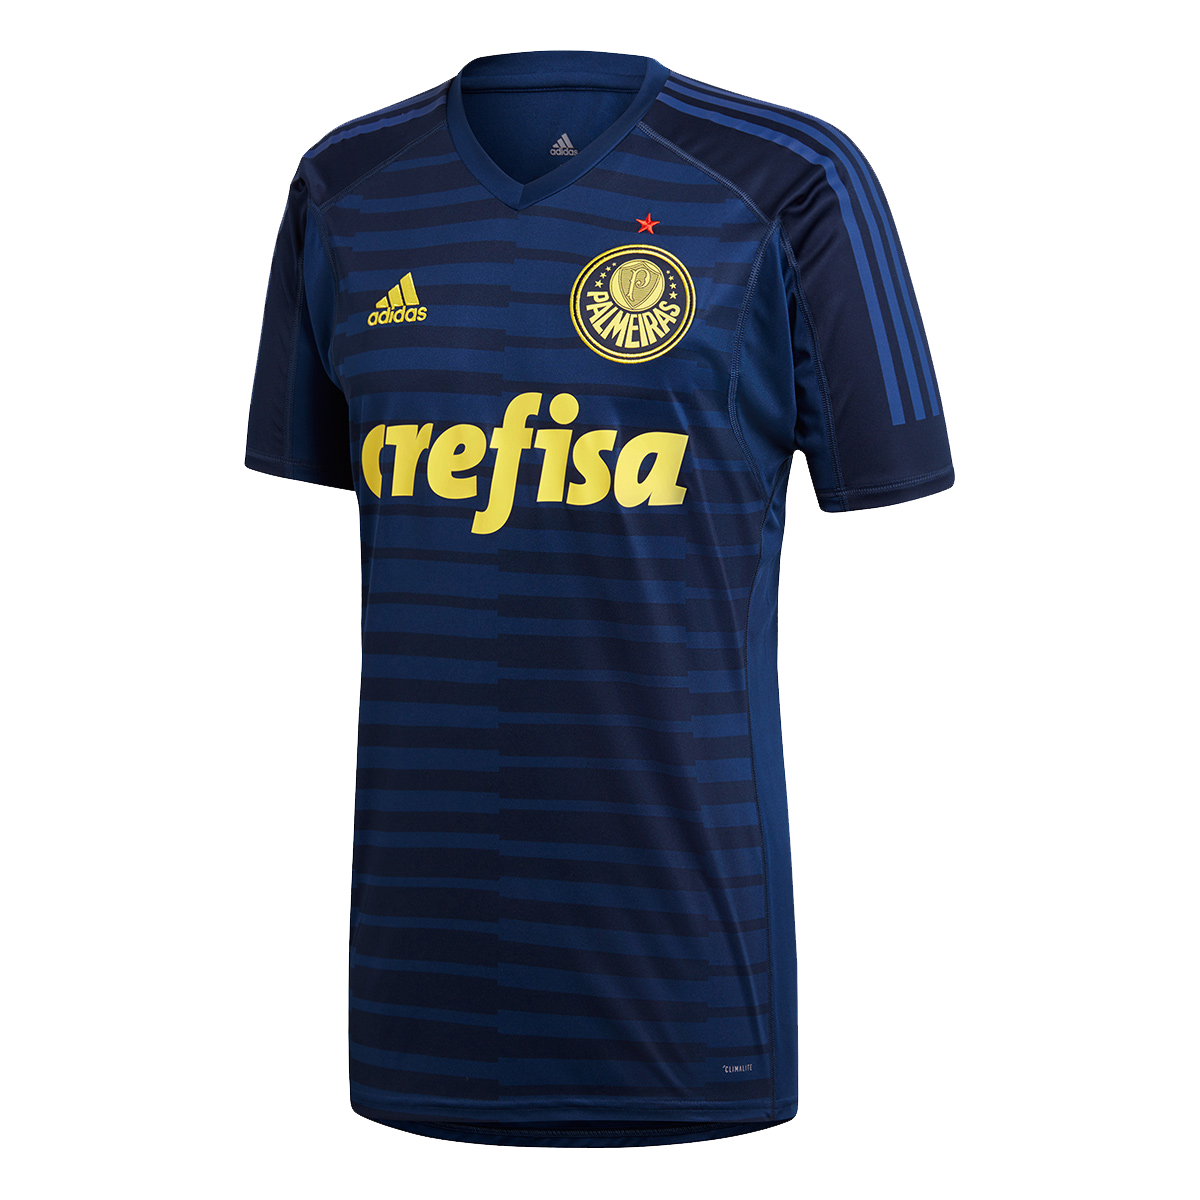 55ddfe68855 US  15.8 - Palmeiras Goalkeeper Blue Jersey Short Sleeve Men s 2018 19 -  www.fcsoccerworld.com